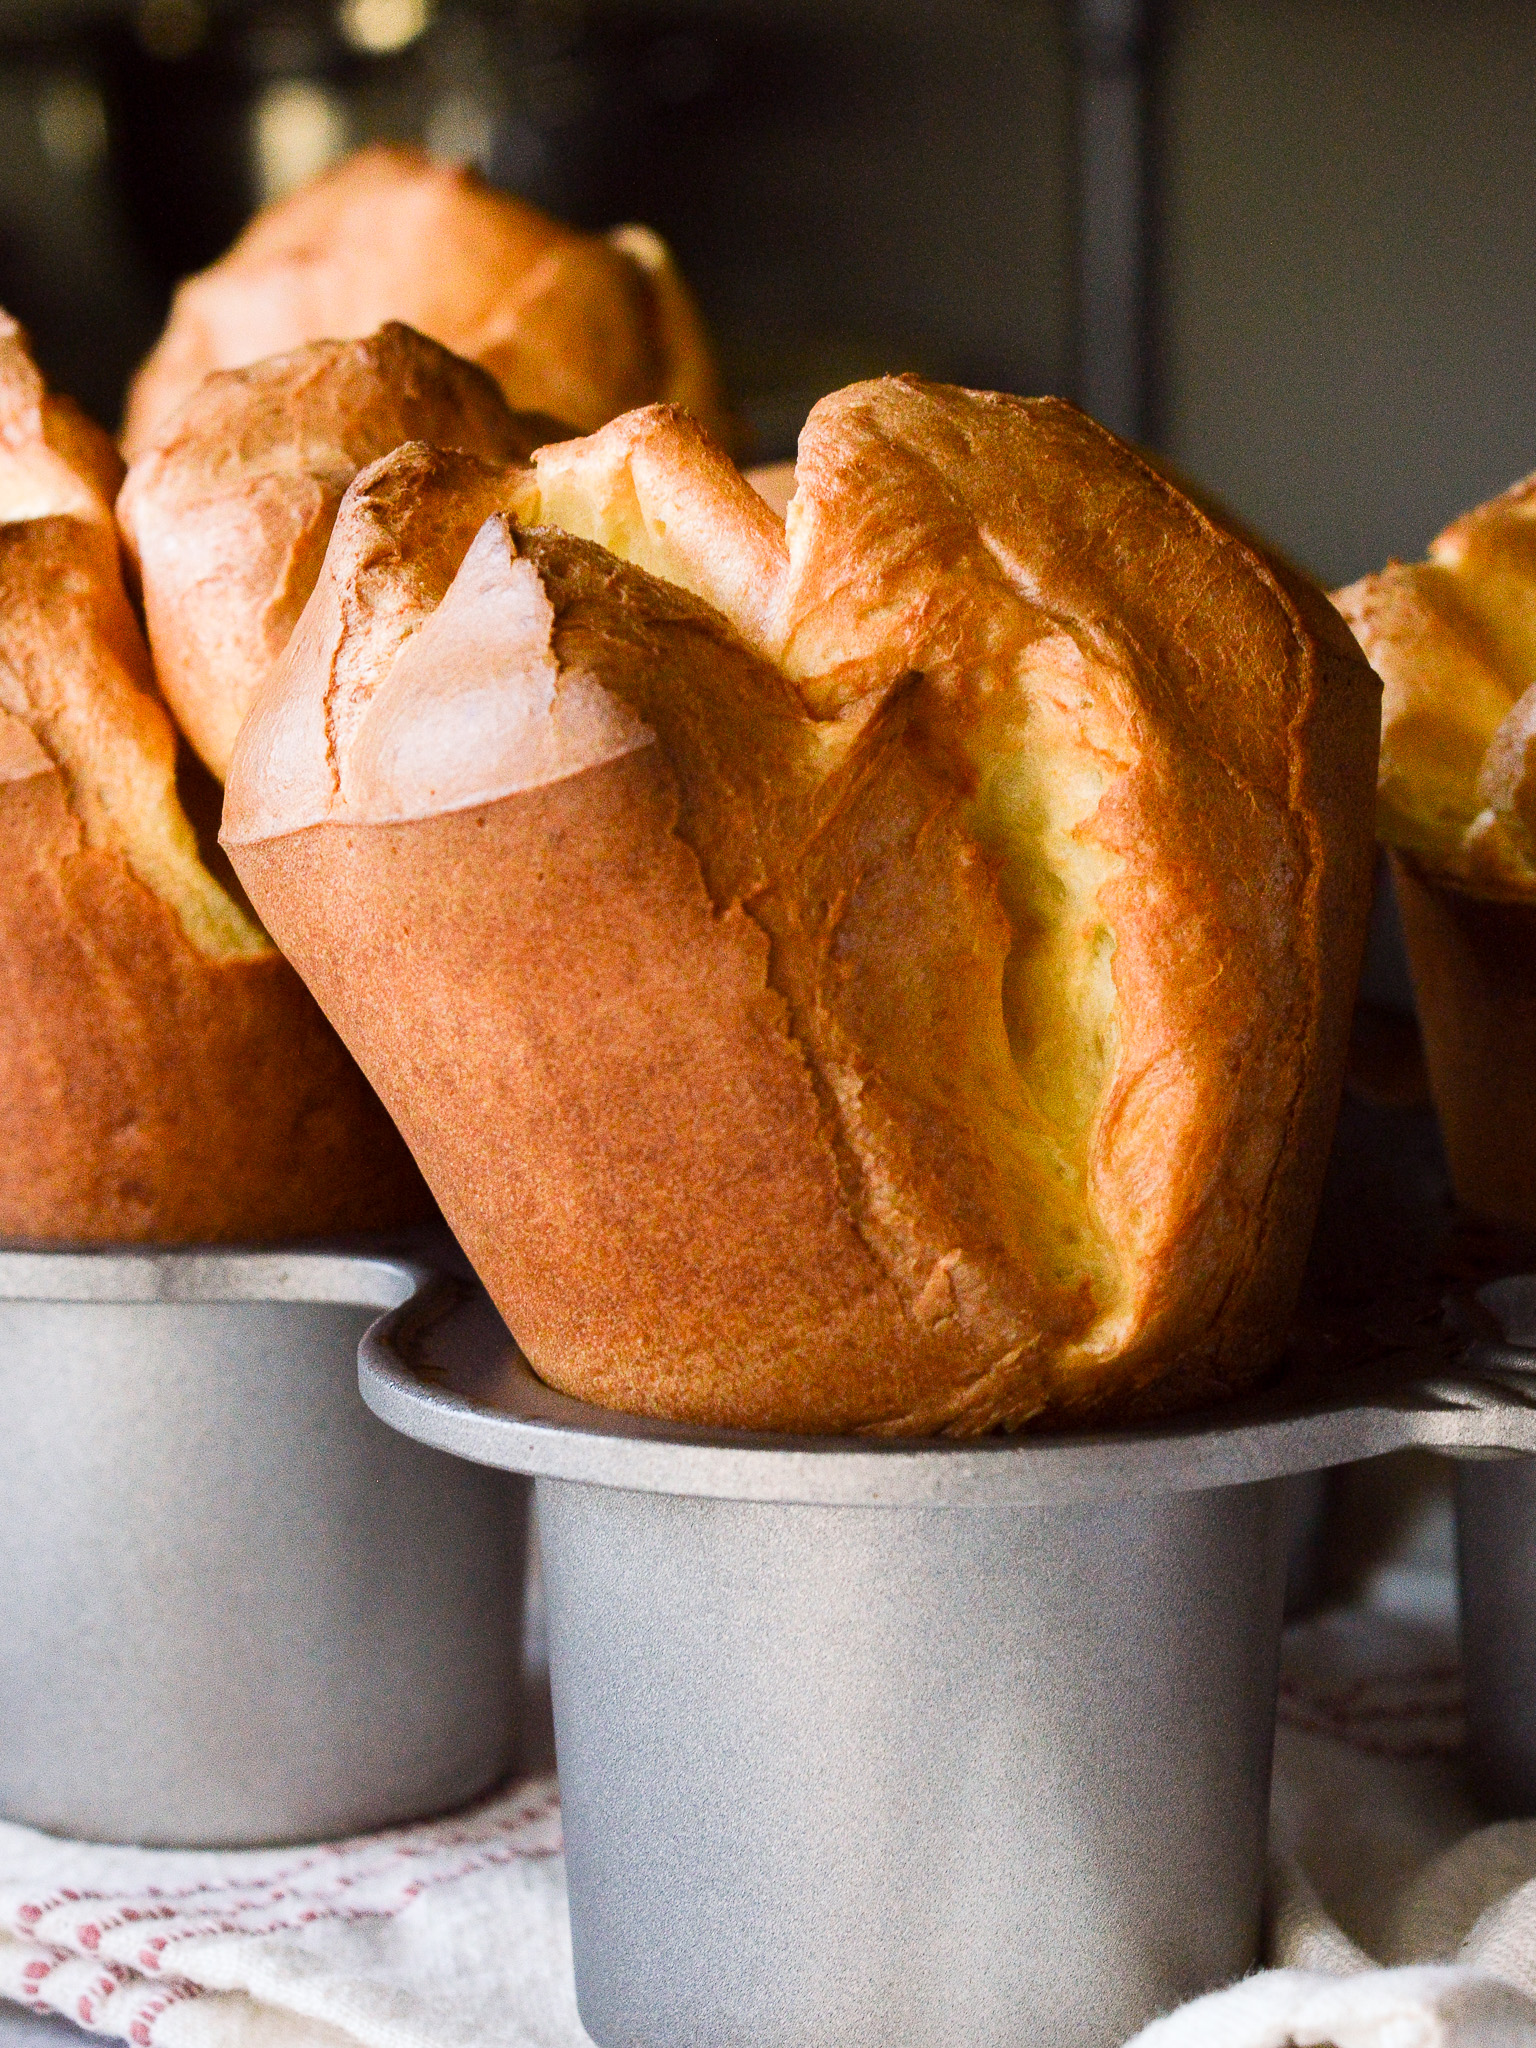 Tall fluffy popovers freshly baked, made using the blender!